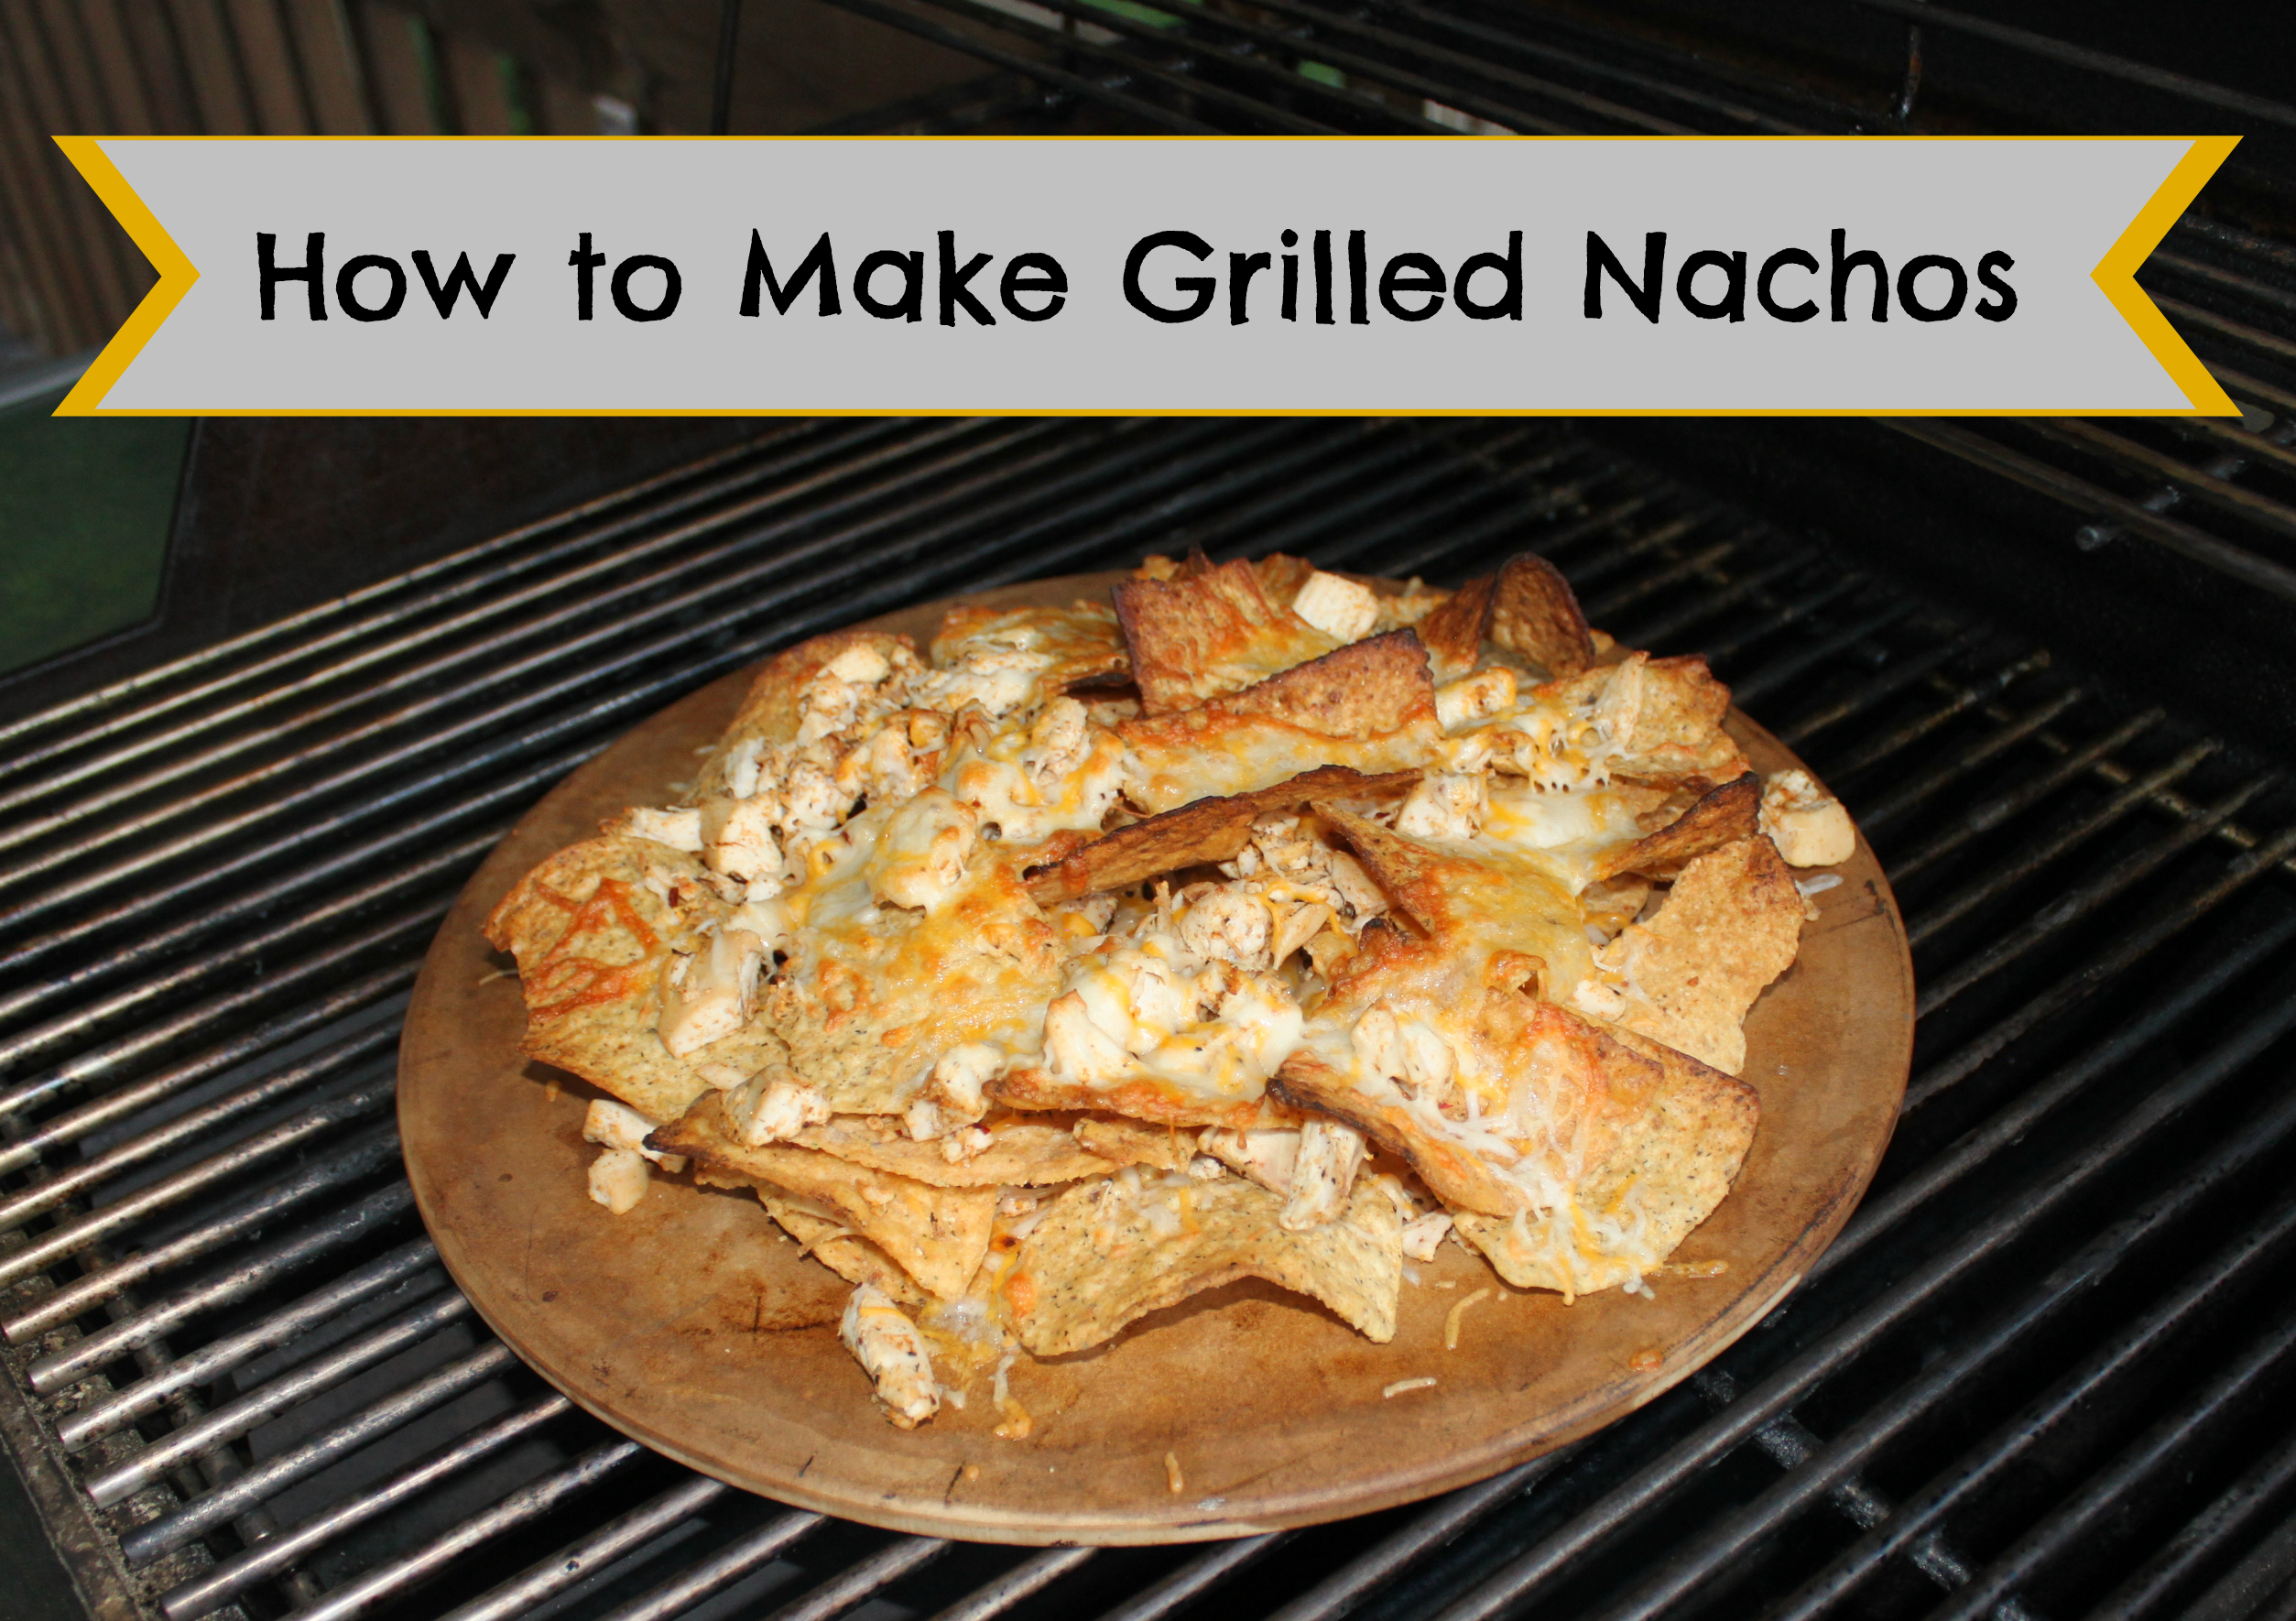 How to Make Grilled Nachos